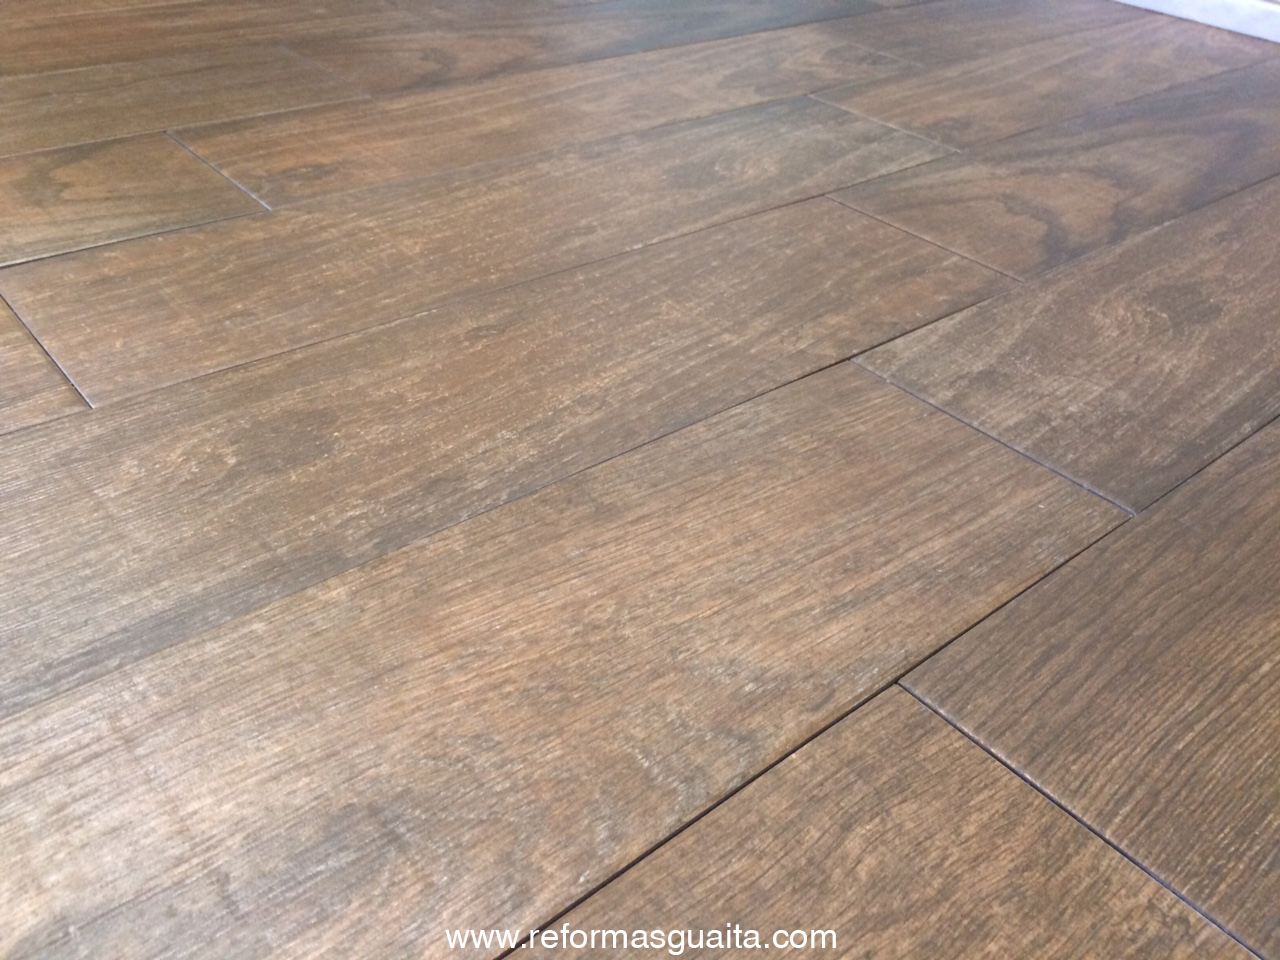 Ceramica imitacion parquet affordable baldosa de interior for Gres simil parquet